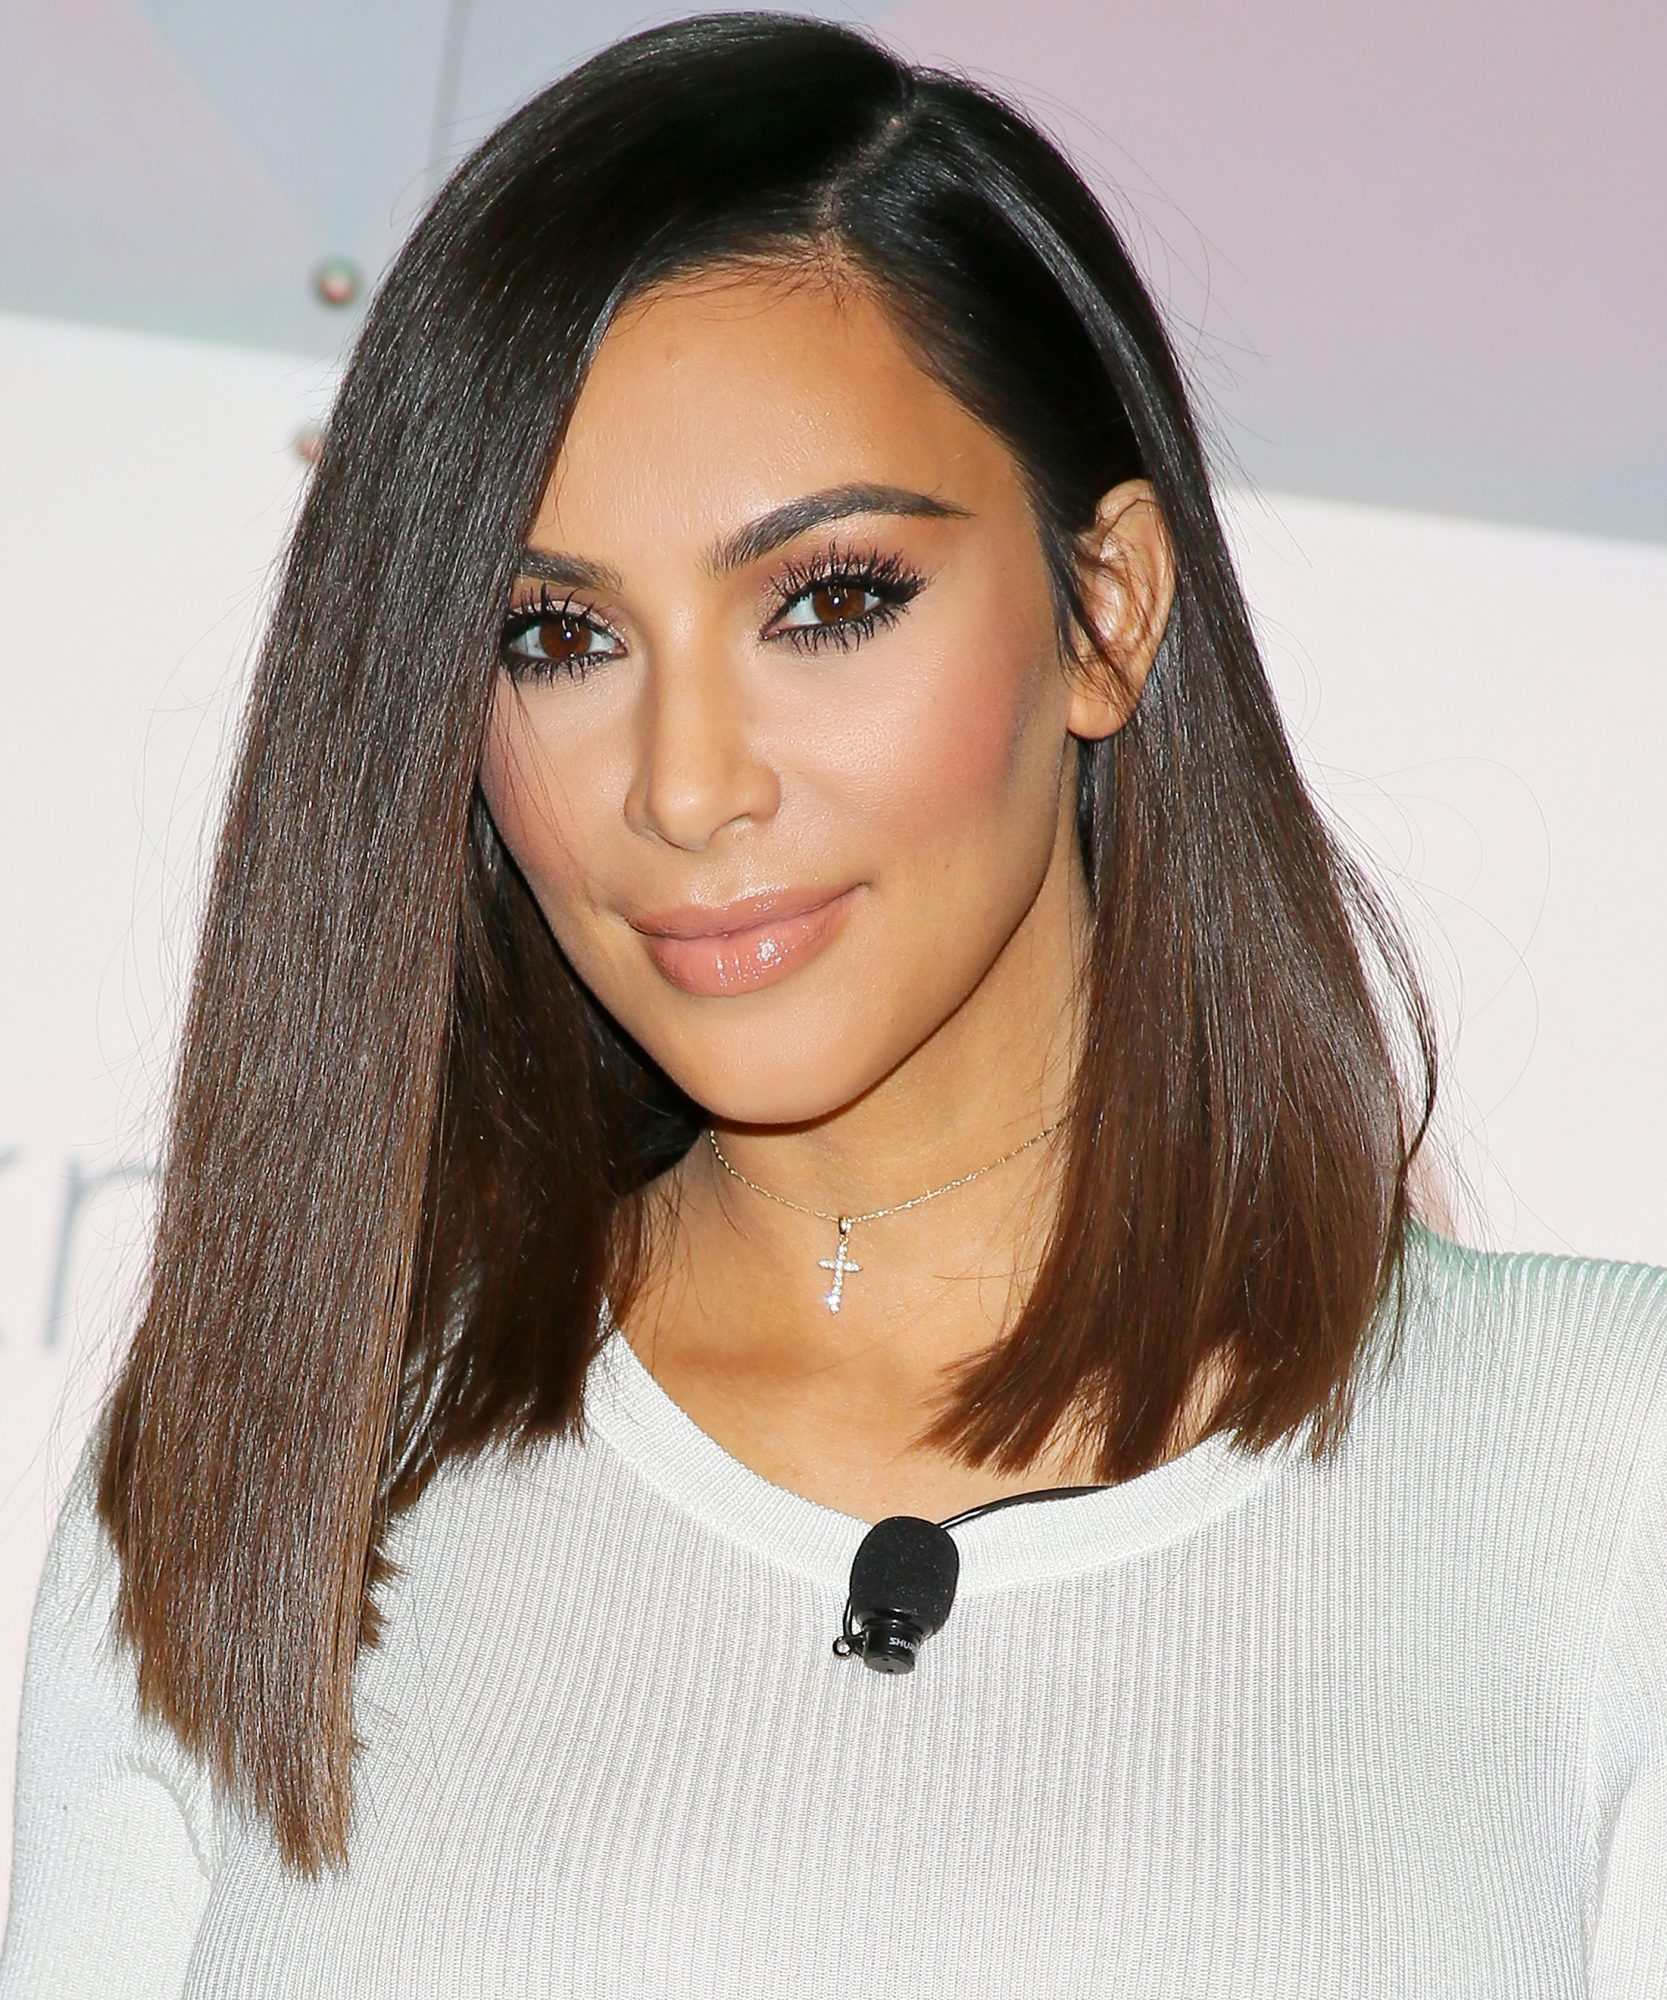 Kim Kardashian West Shares Her 5 Favorite Nutritious and Fun Snacks for Daughter North